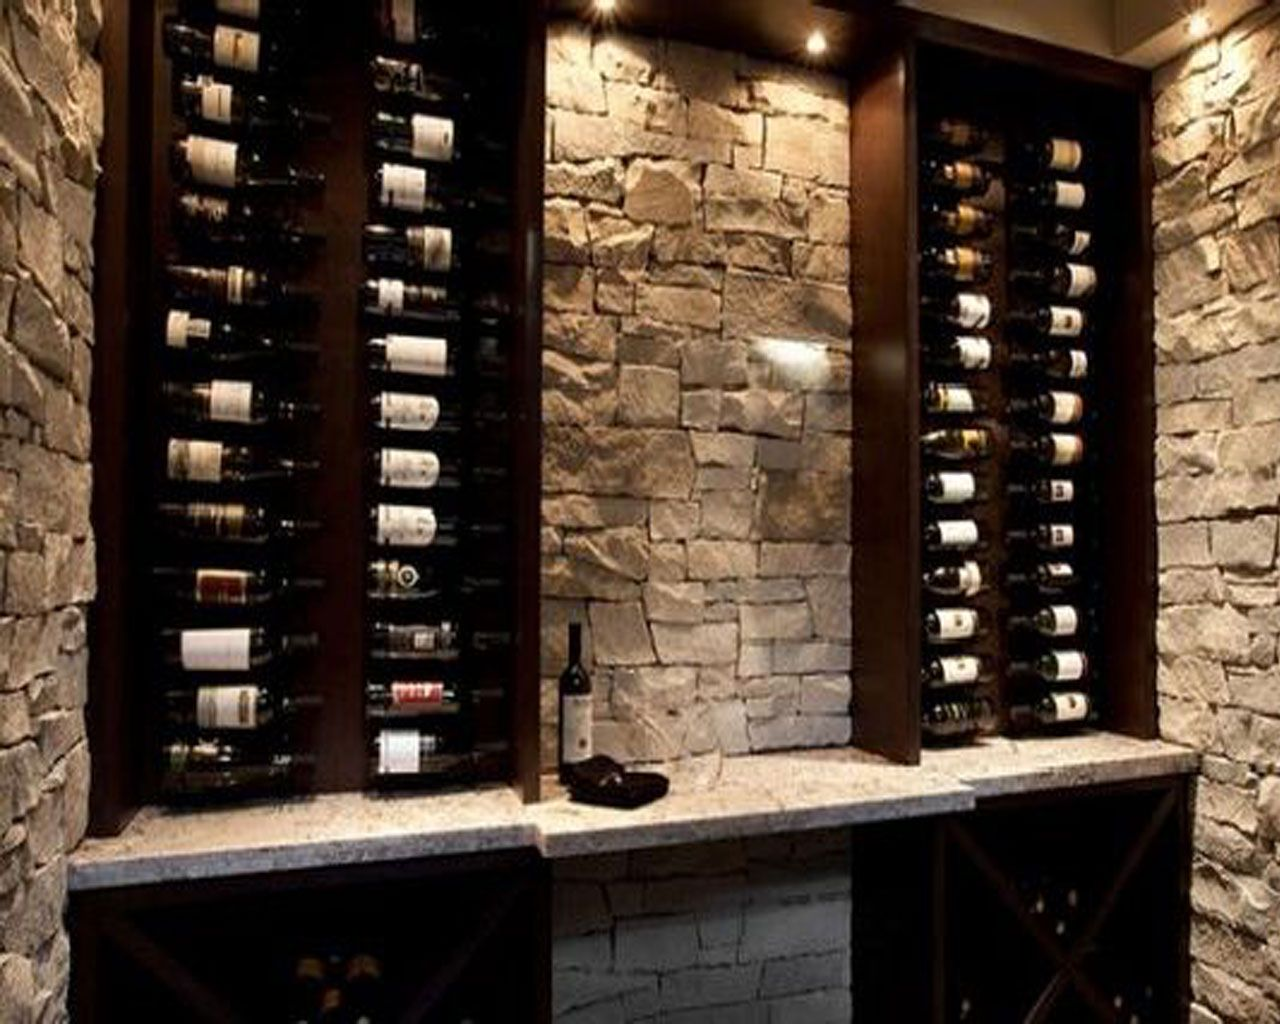 Wine Racks For Home: Wine Tasting Room Design #12 Furniture: Wine Storage